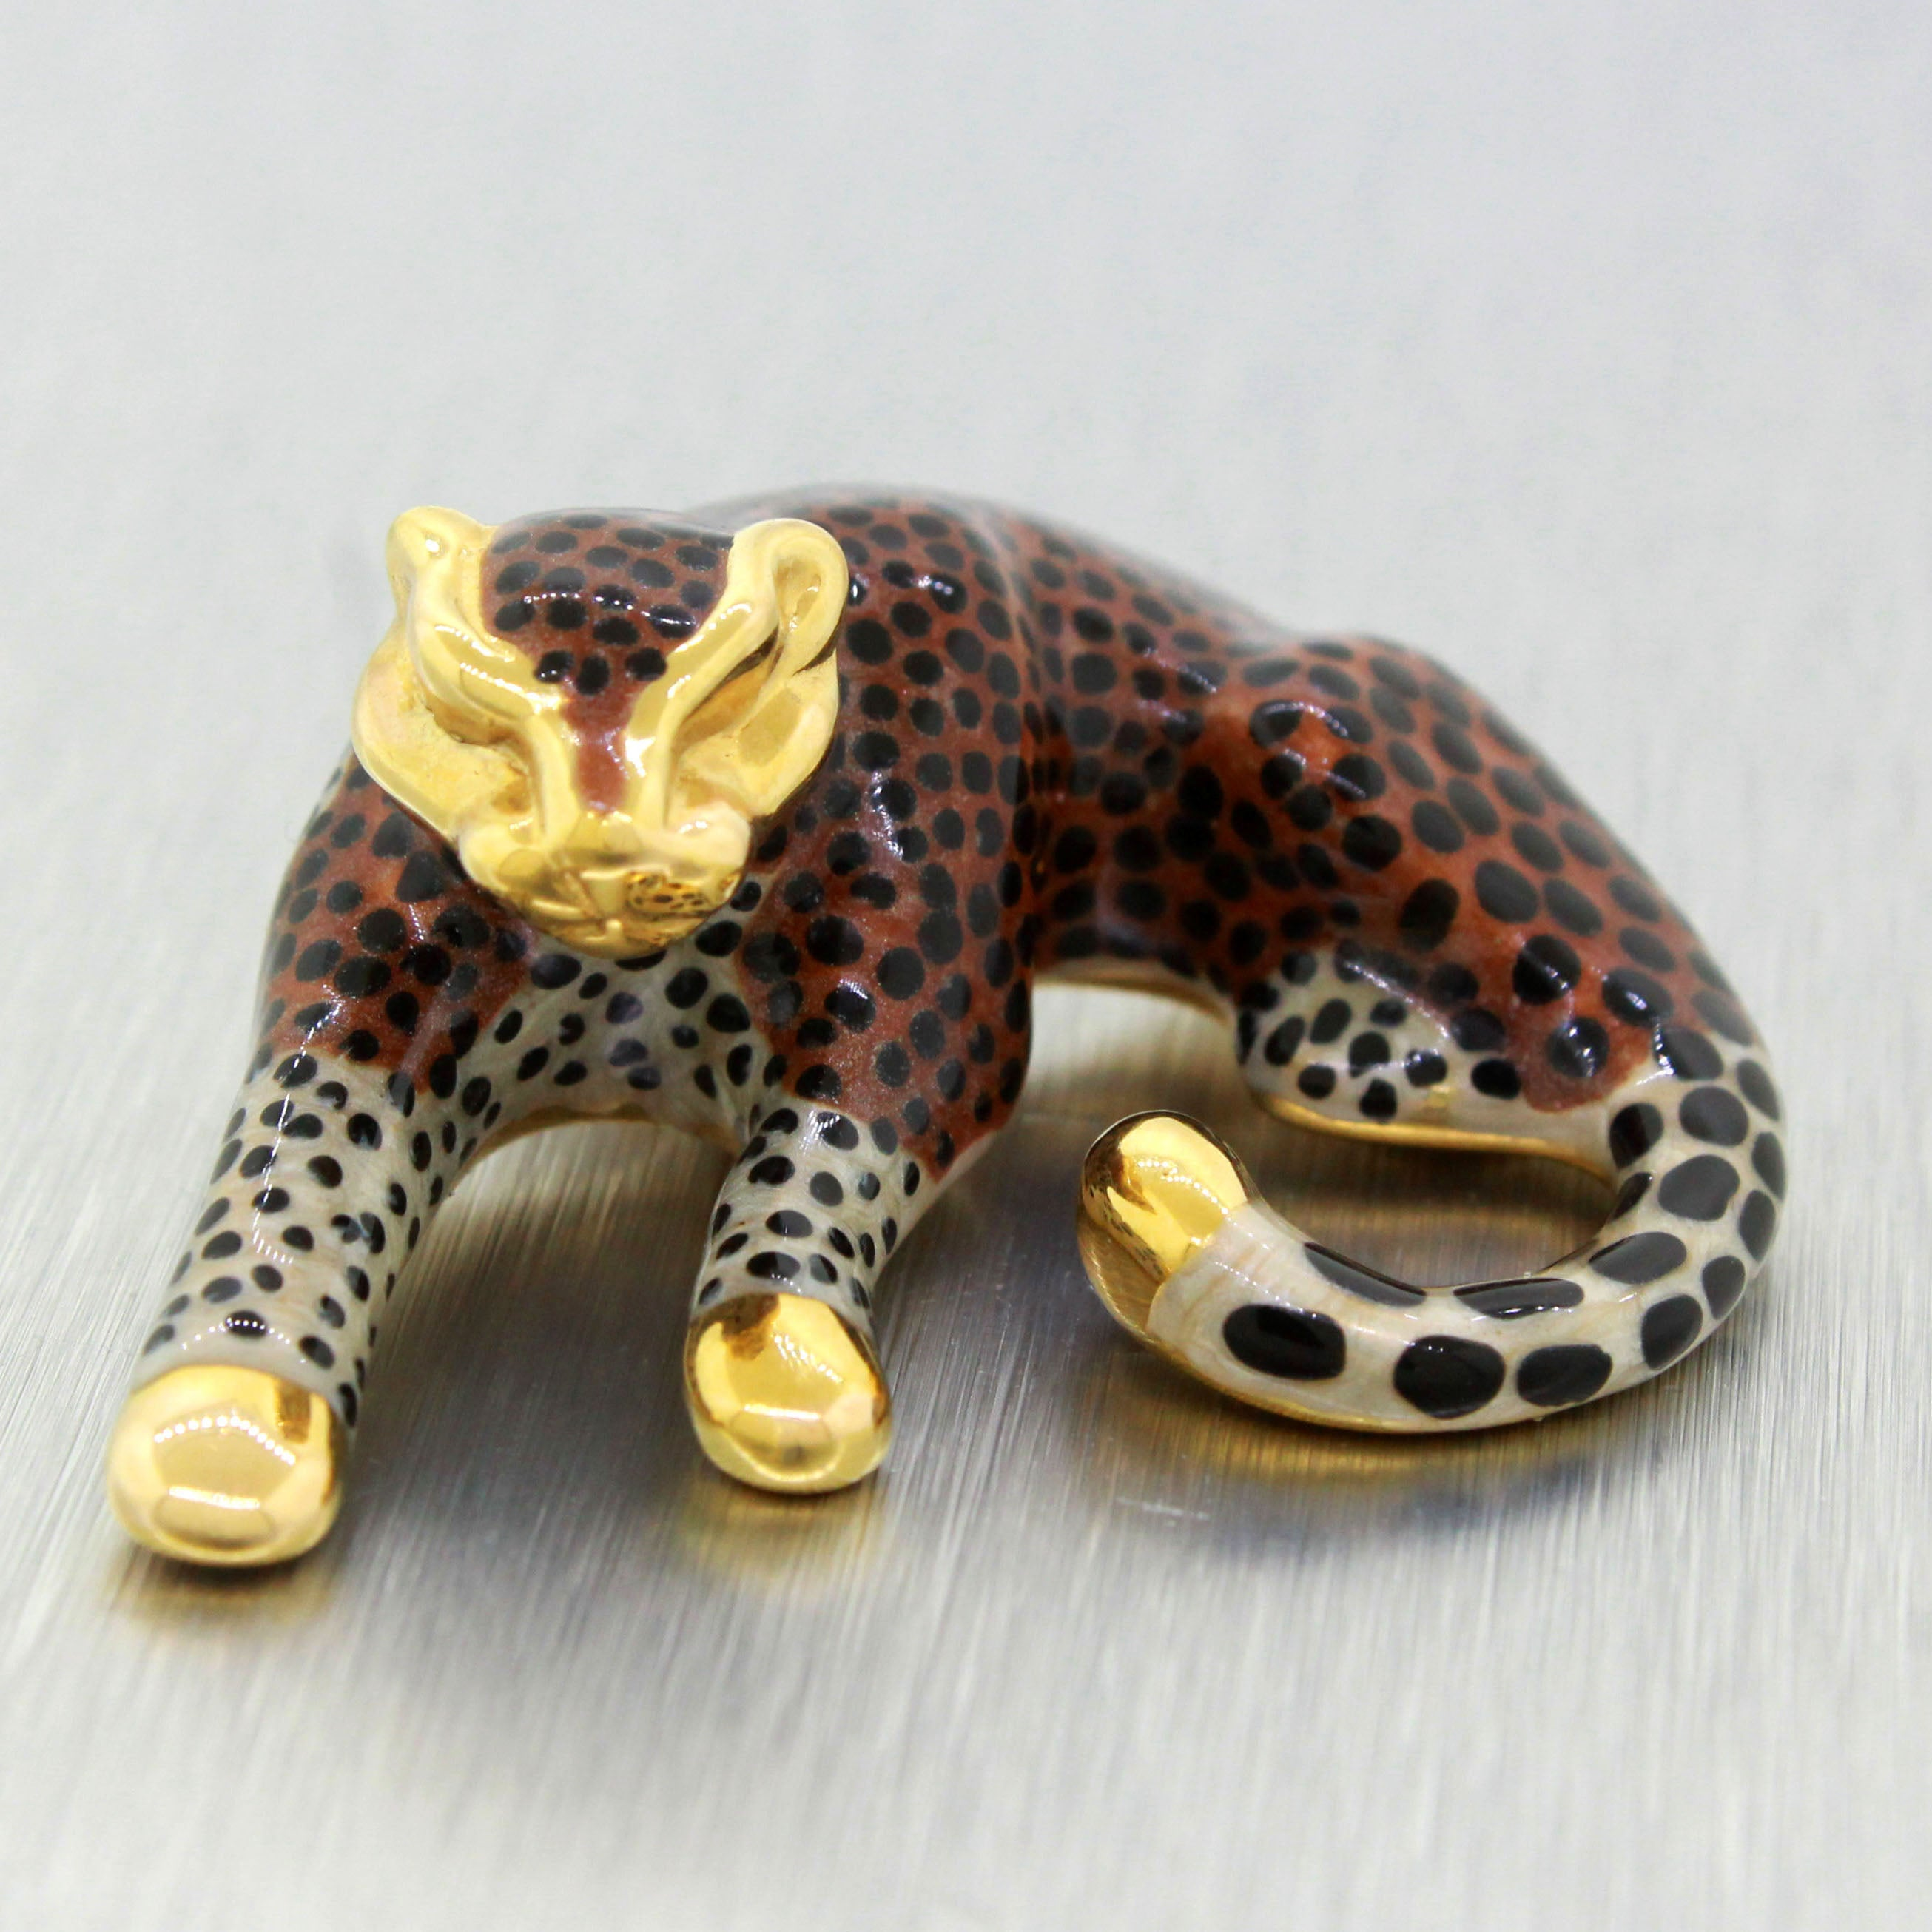 Vintage Estate 14k Solid Yellow Gold and Enamel 3.9g Cheetah Pendant